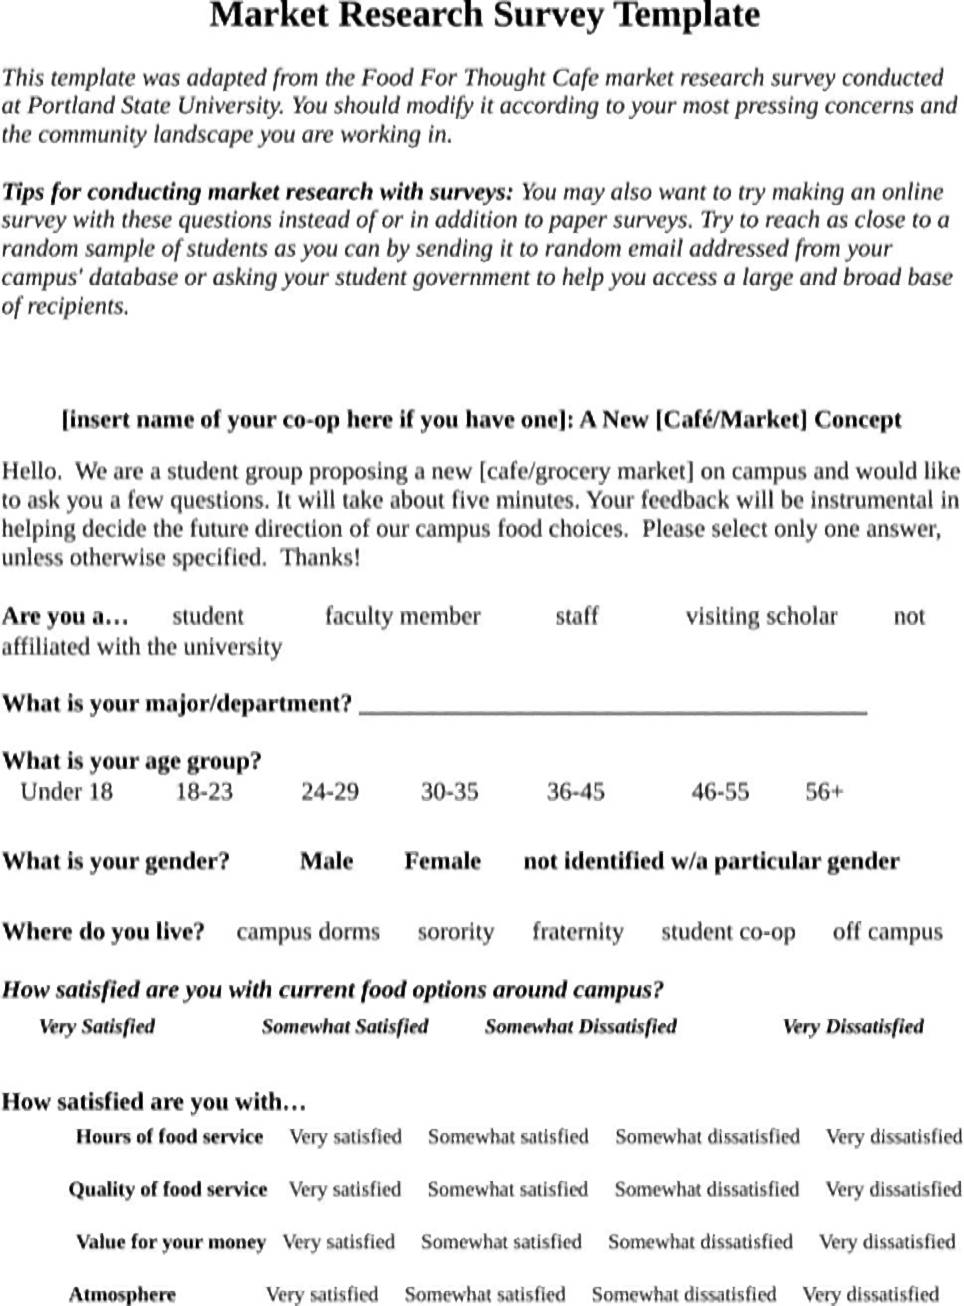 an example of a market research questionnaire